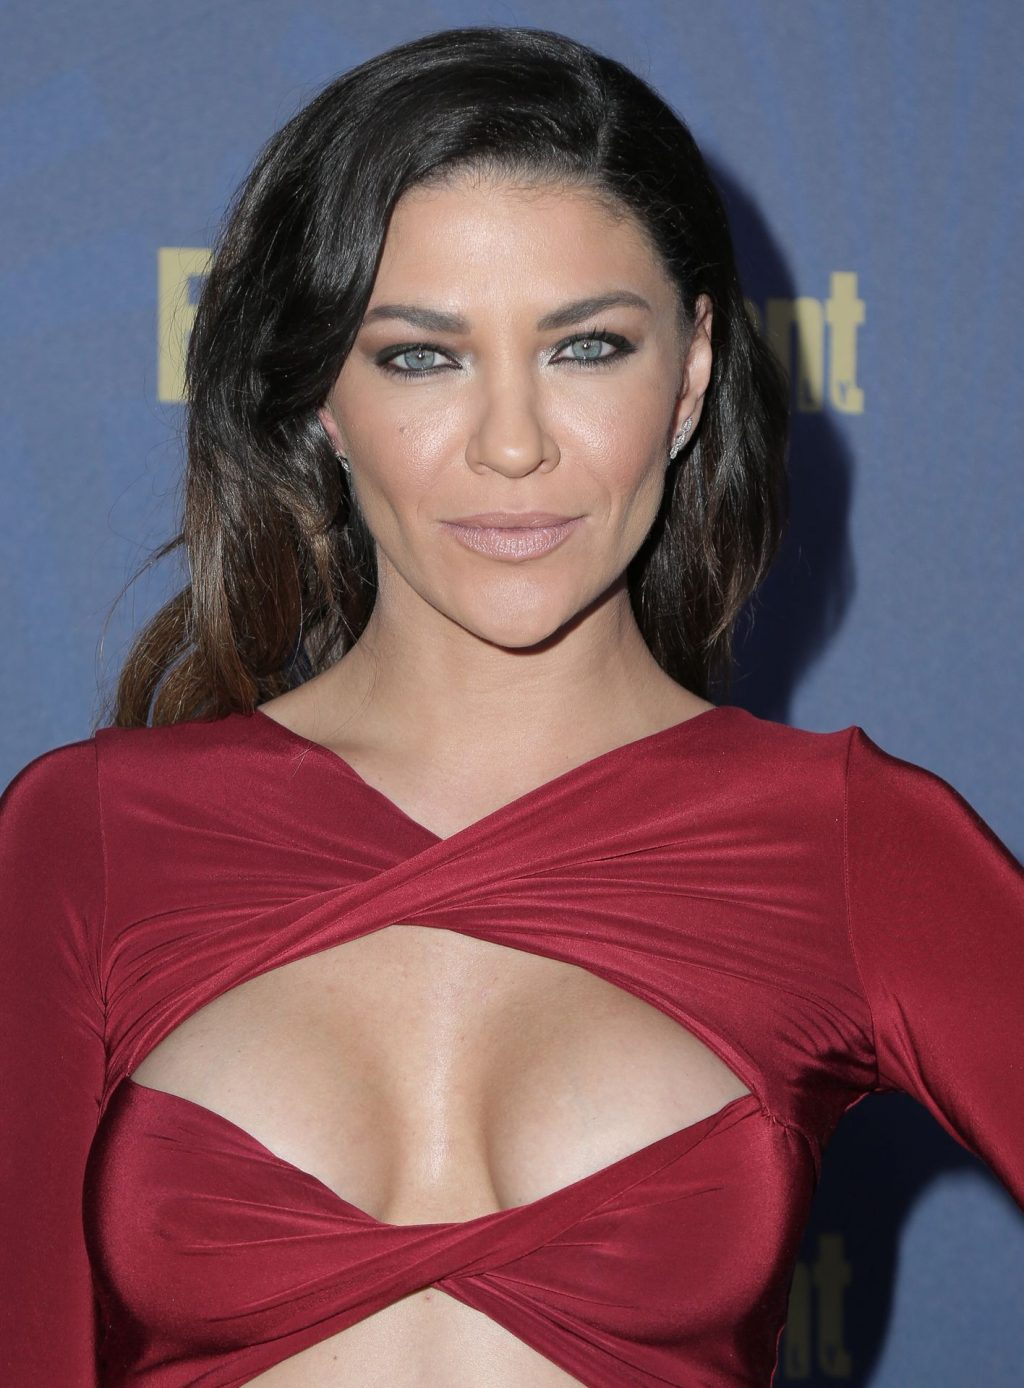 Jessica Szohr Shows her Cleavage at the Entertainment Weekly Pre-SAG Awards Celebration (25 Photos)